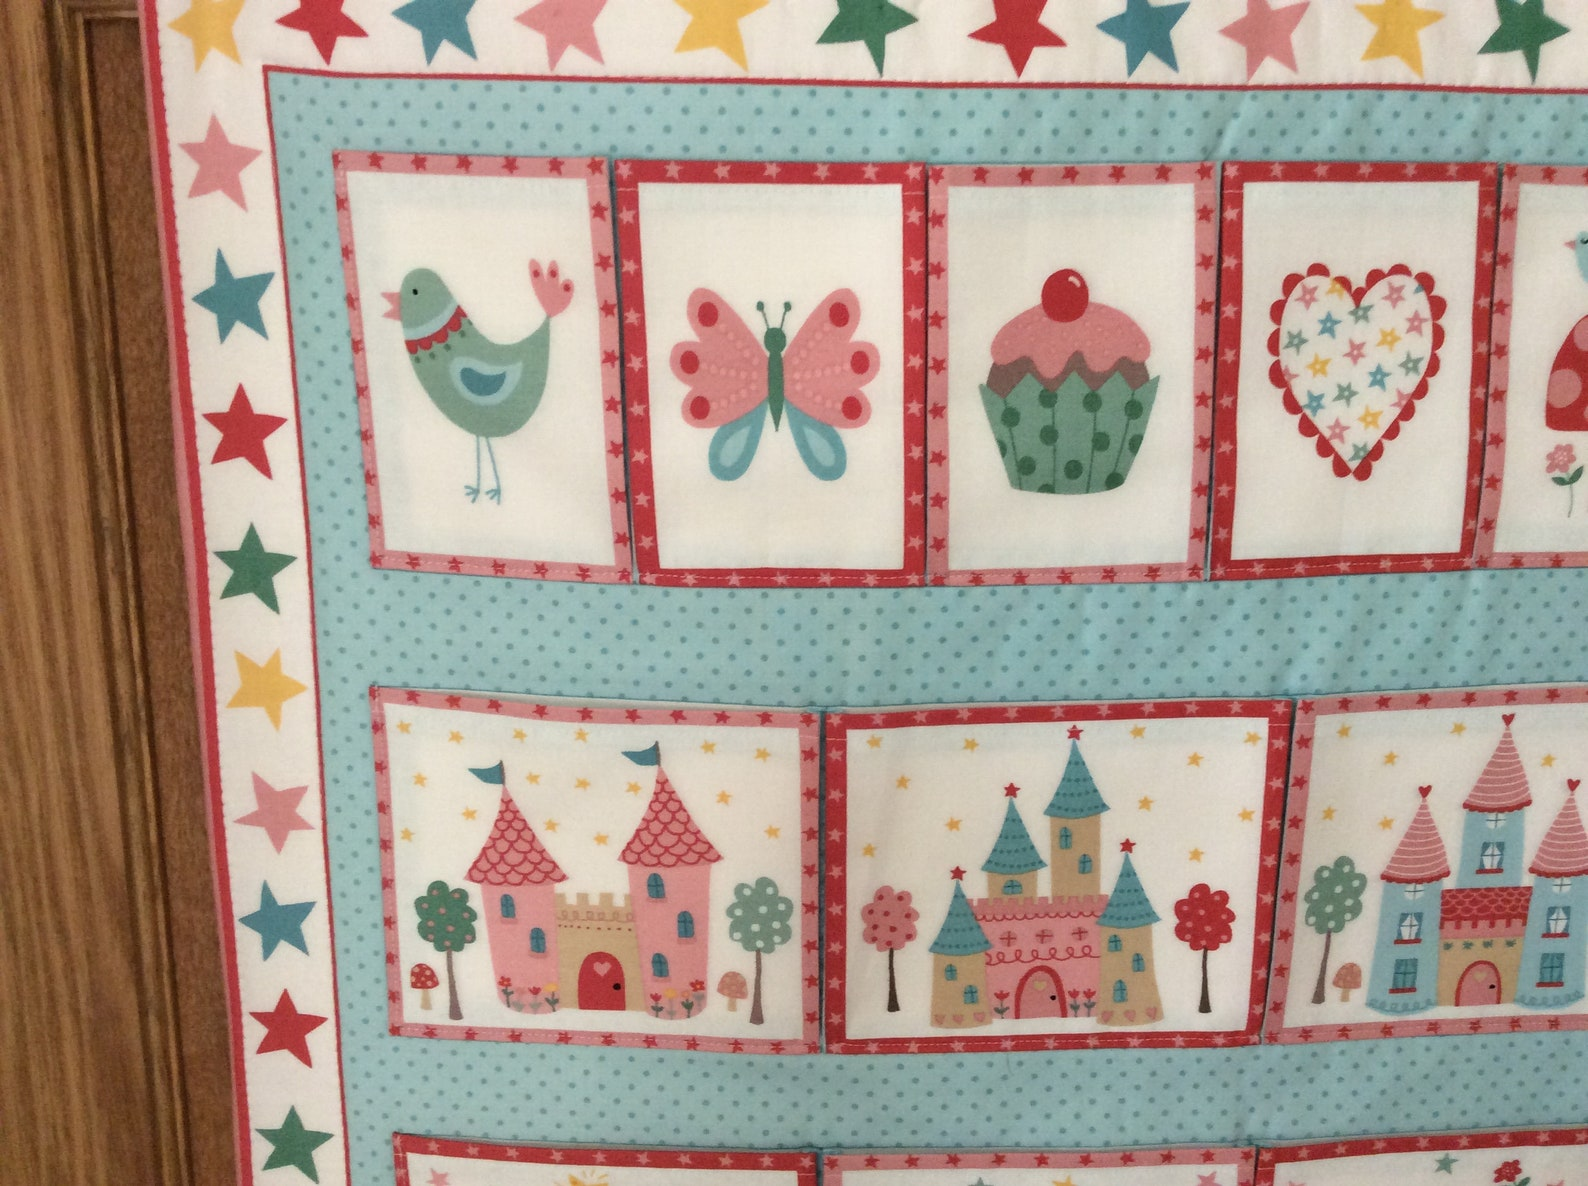 girls/childrens fabric wall hanging/storage , 11 pocket panel, princess design backed with ballet shoe design fabric, 100% cotto